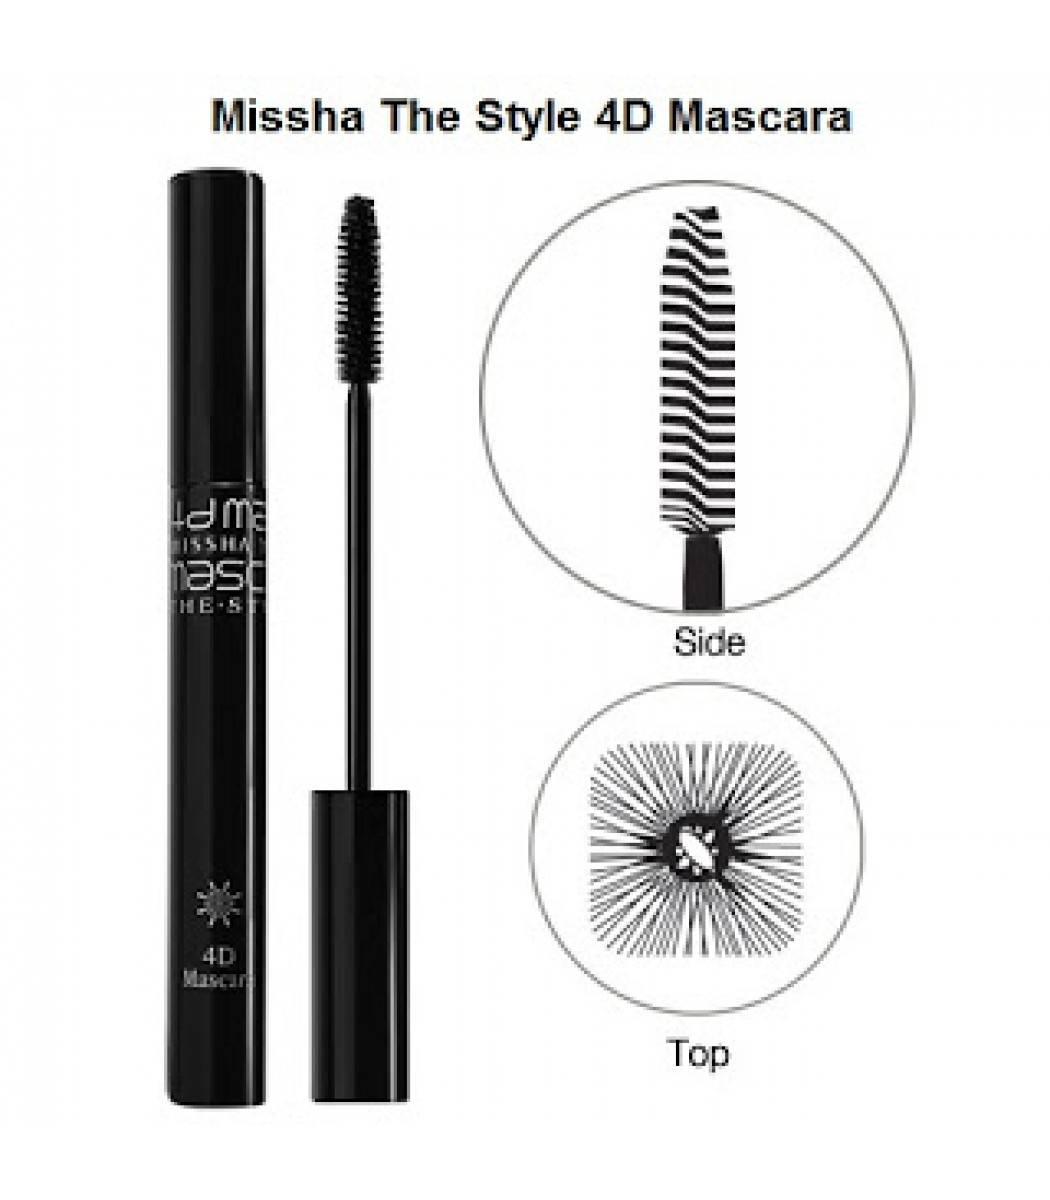 Missha The Style 4D Mascara (black)